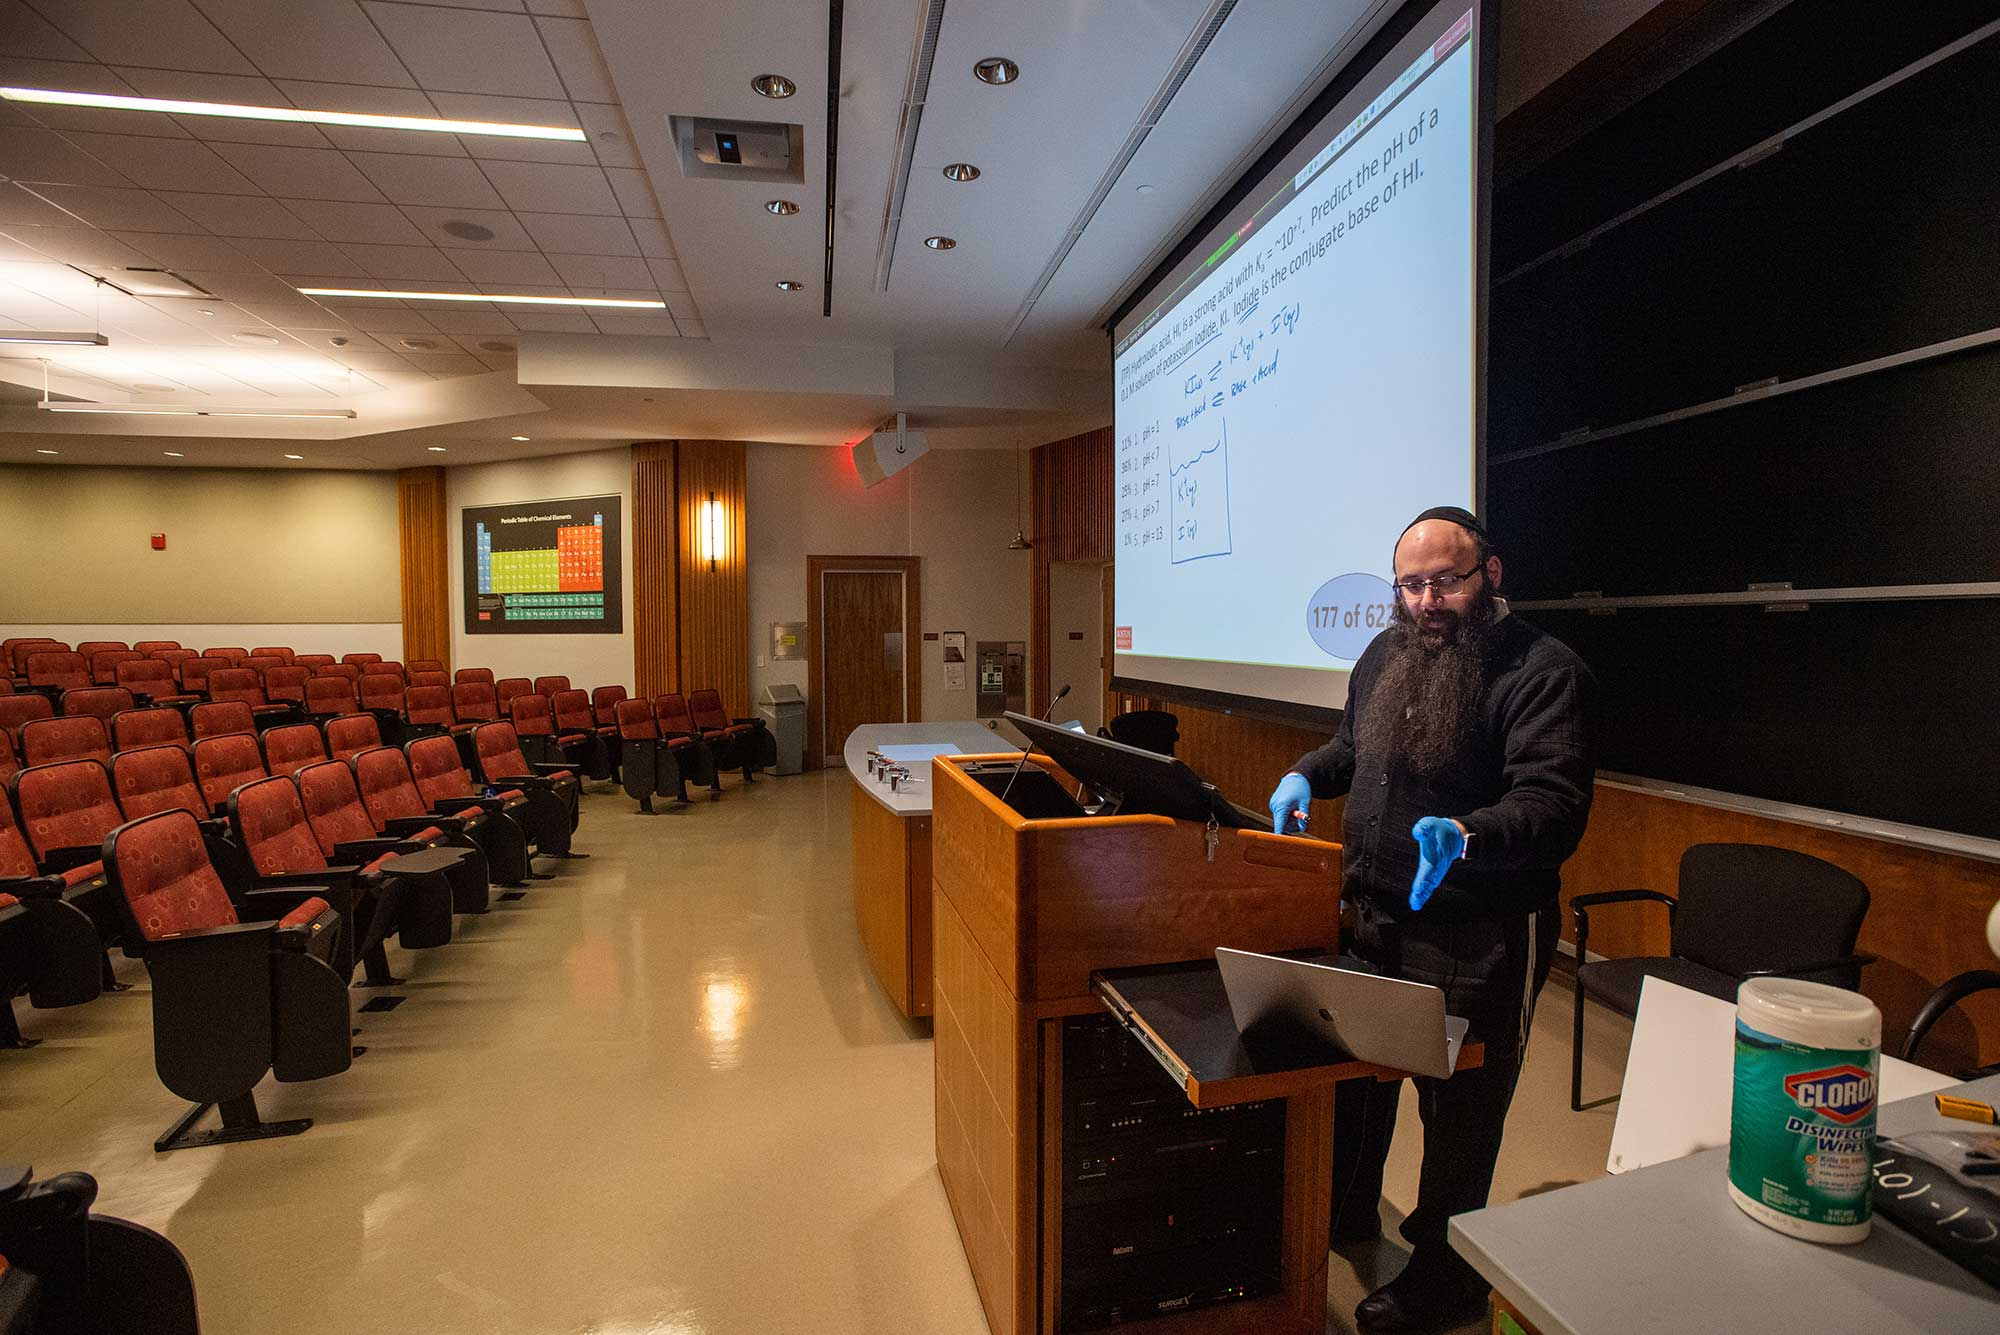 Senior Lecturer in Chemistry Binyomin Abrams gives a remote lecture using a laptop and his smart-podium at Boston University.